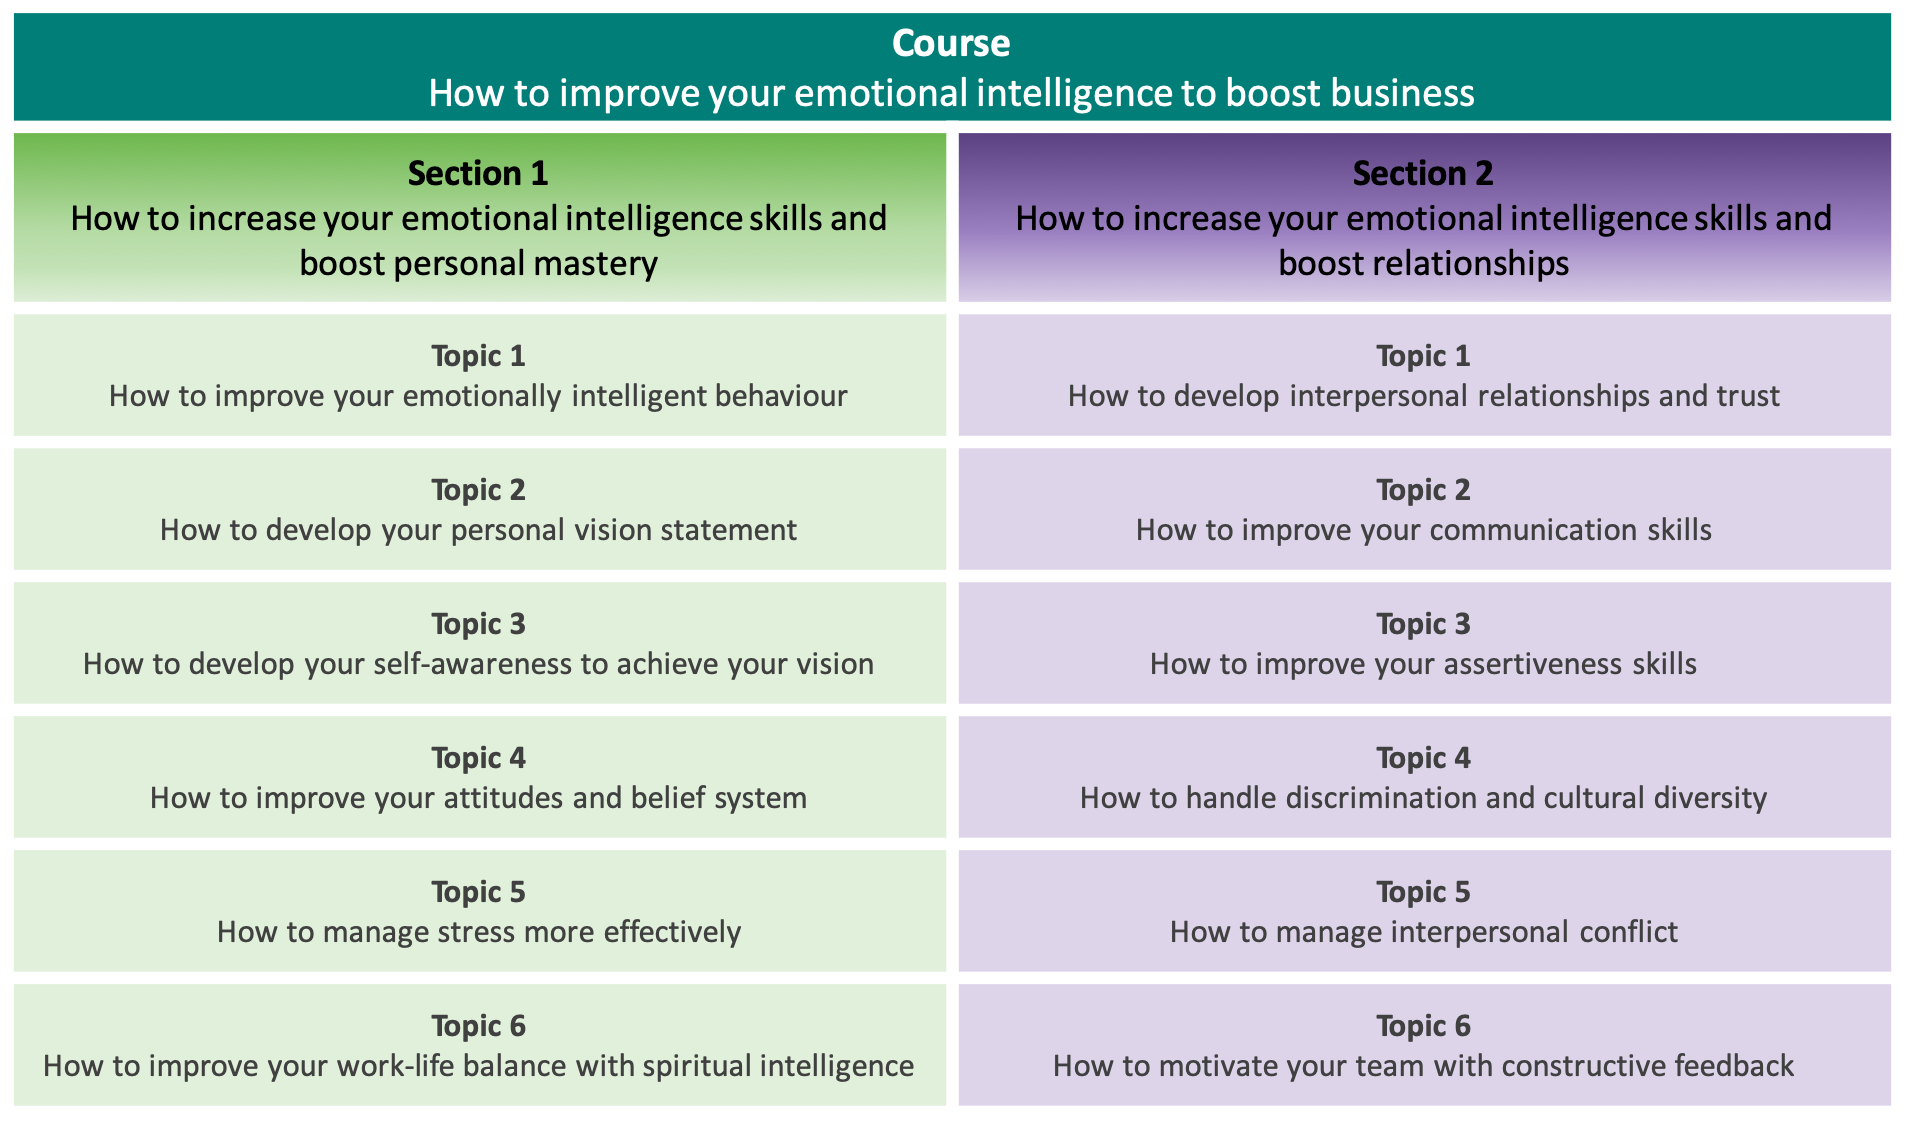 How to improve your emotional intelligence to boost business